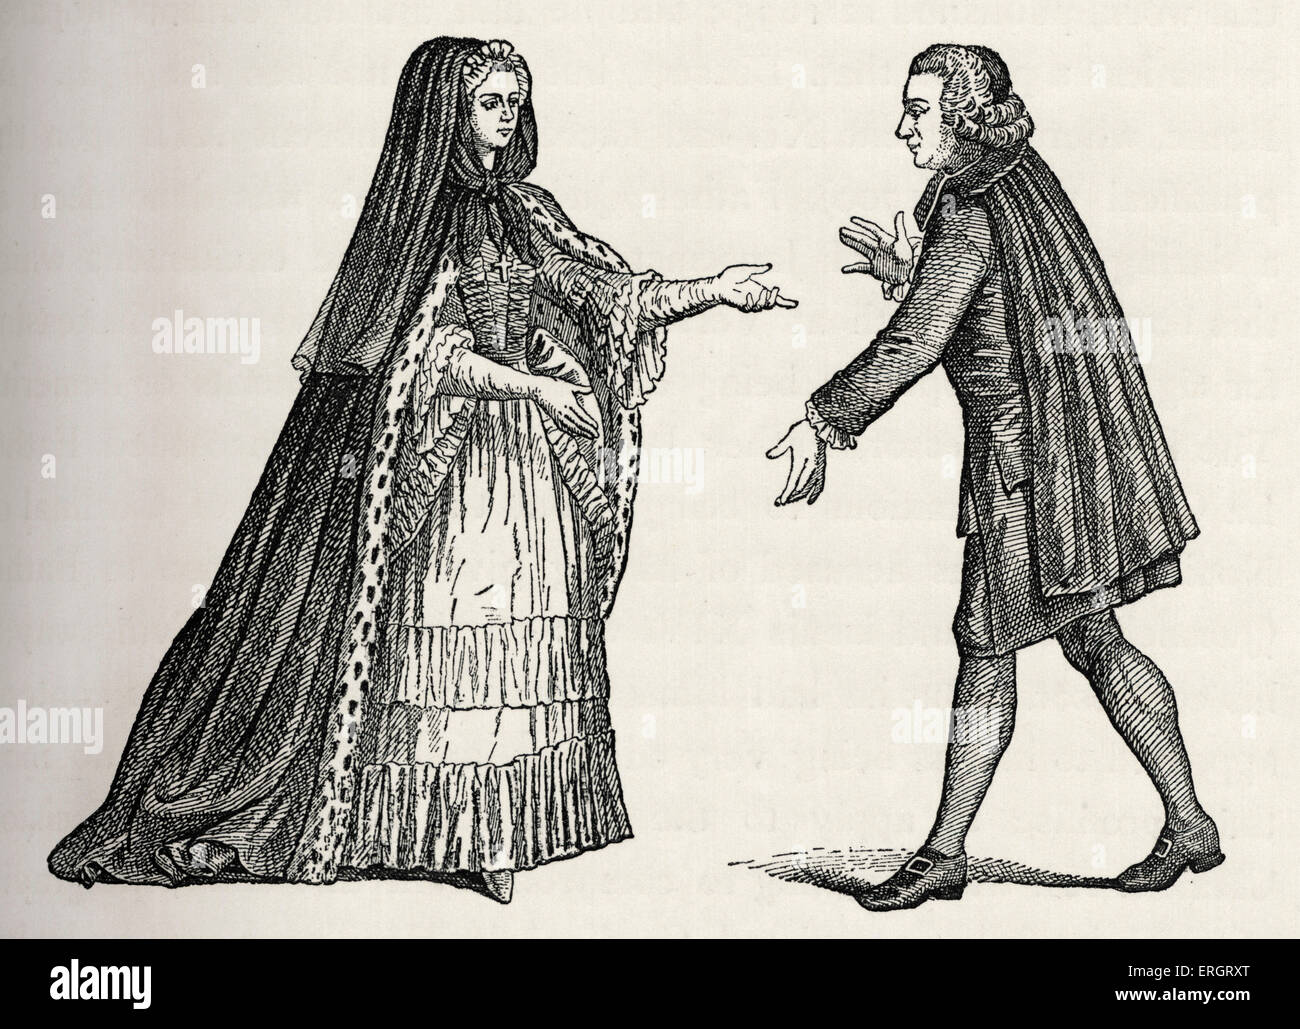 Clergy during the reign of Louis XV: French 18th abbess and abbot in outdoor clothes / costume. After Dupin's - Stock Image